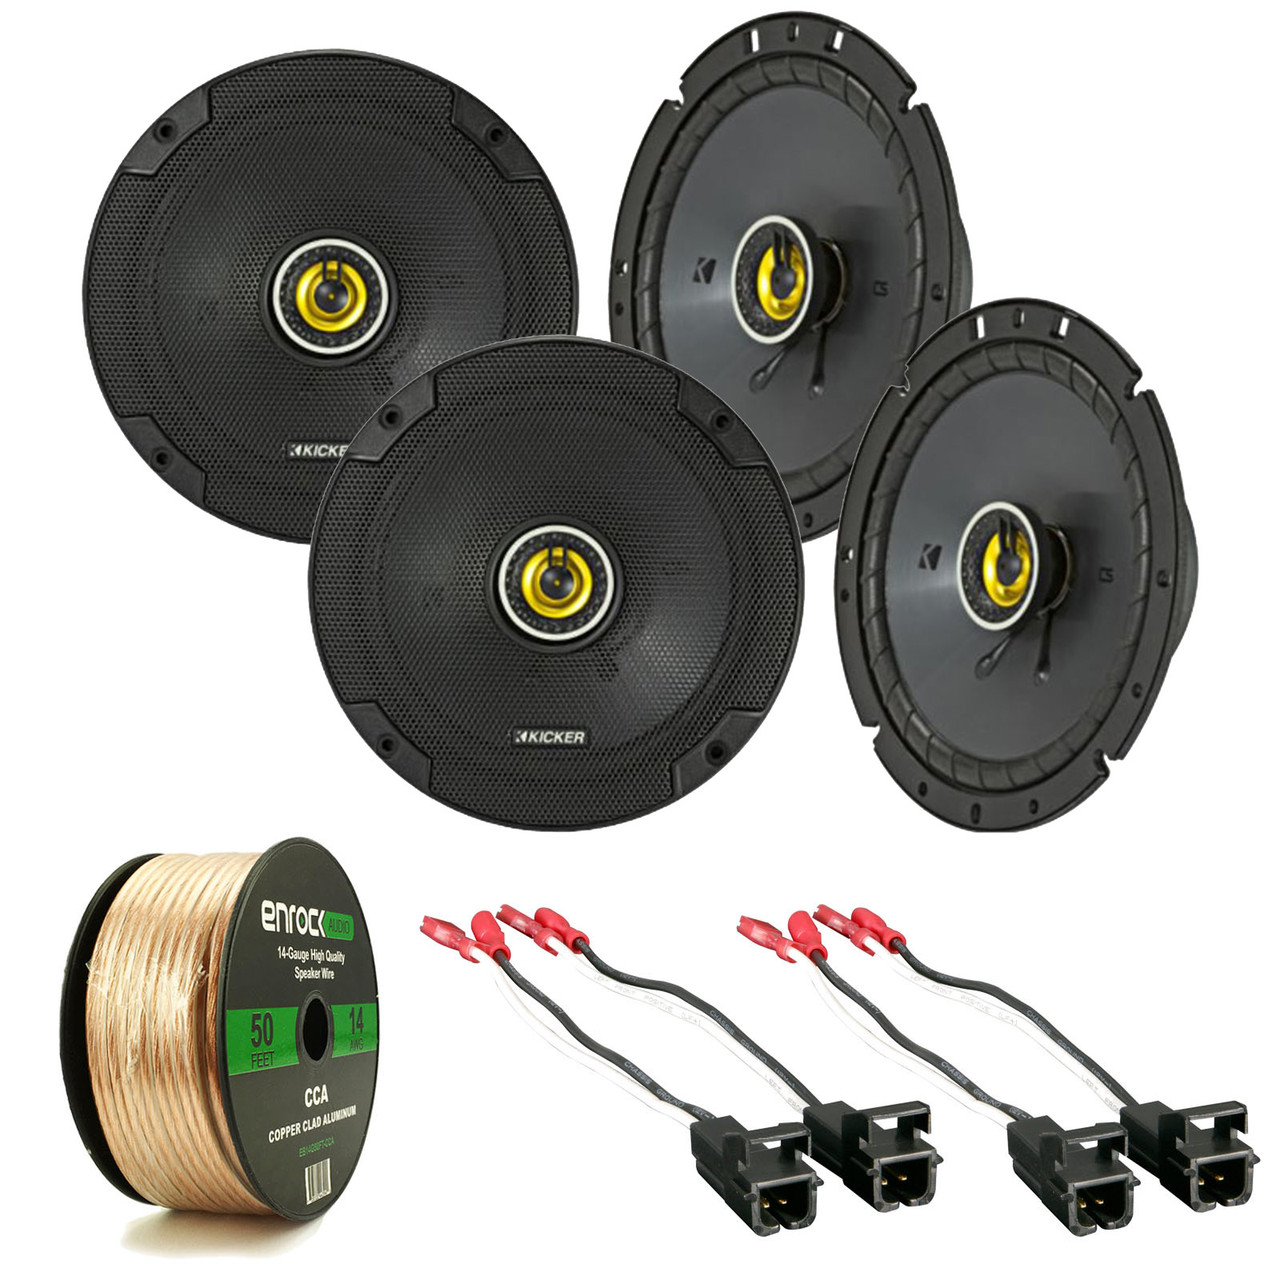 hight resolution of 8x kicker 6 3 4 car speakers 2x speaker wire harness 14 awg 50ft wire r 40cs674 2 72 4568 road entertainment